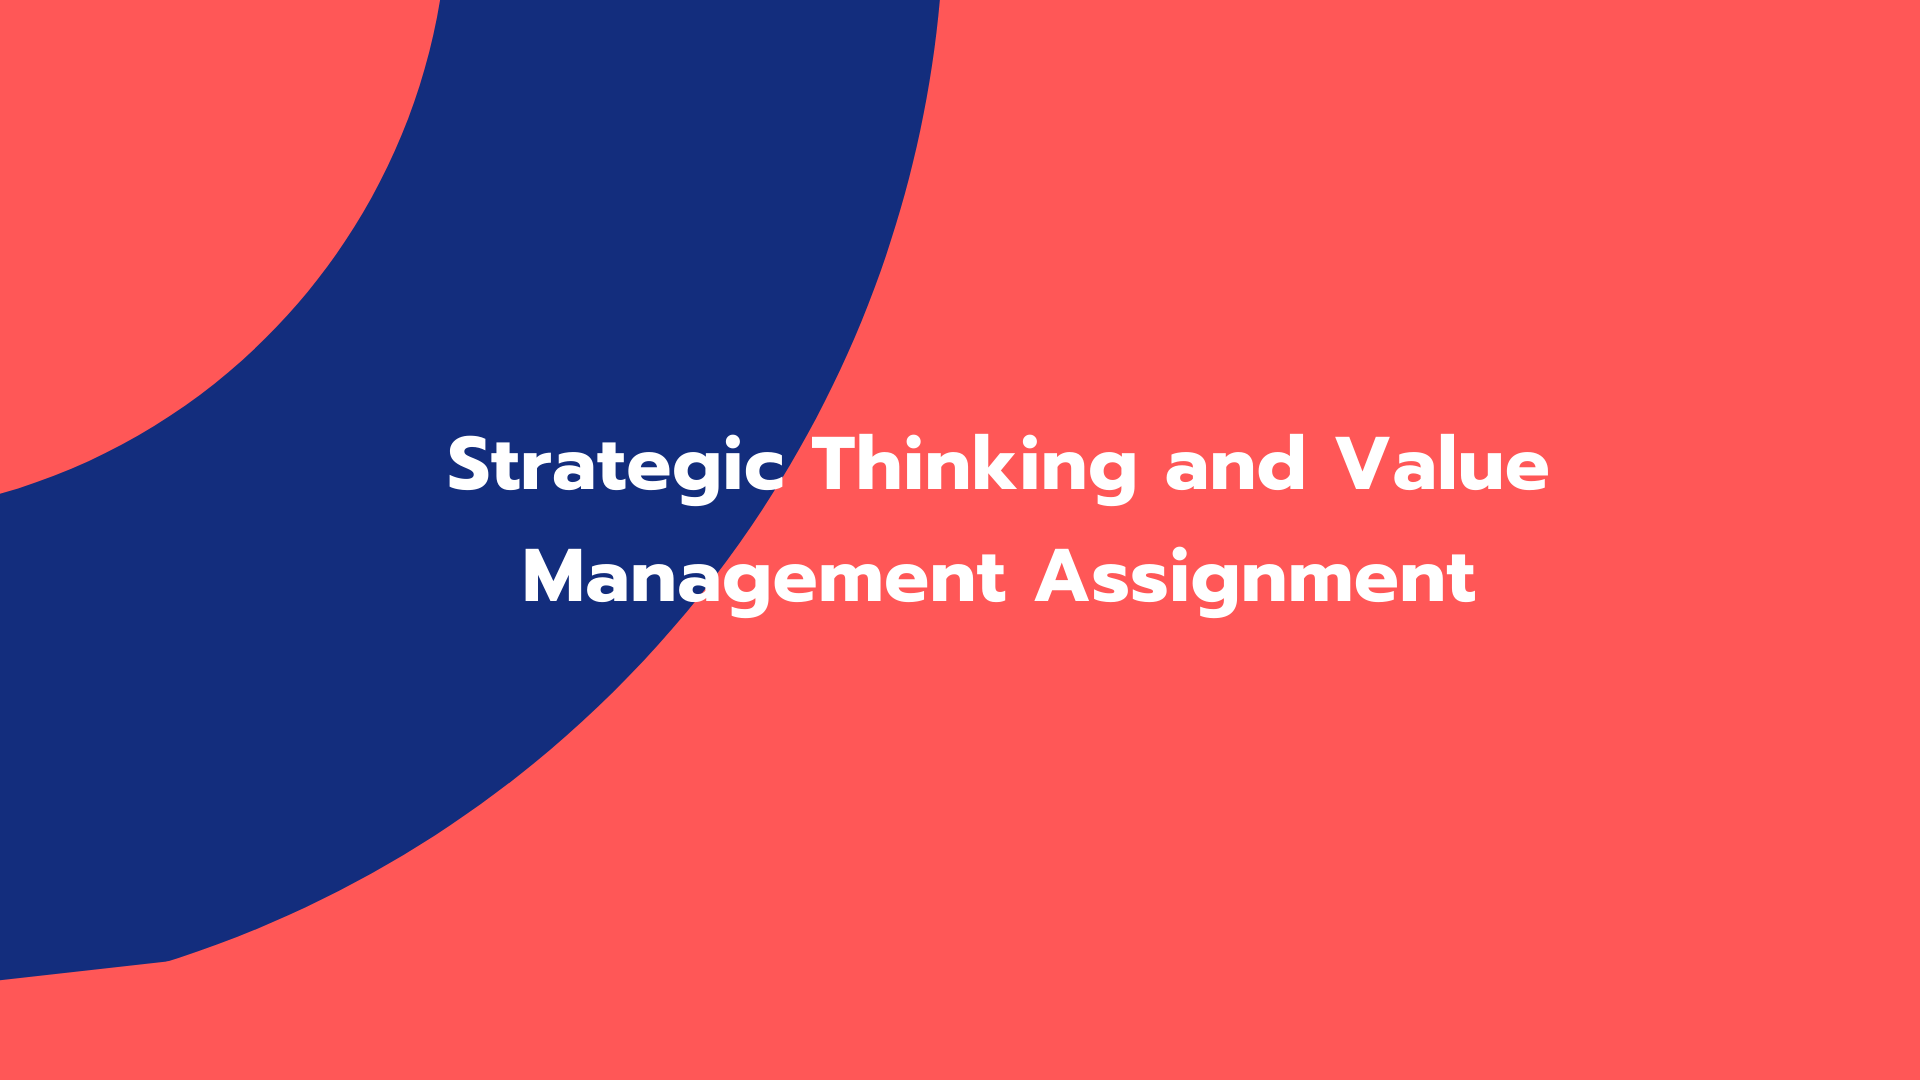 Strategic Thinking and Value Management Assignment